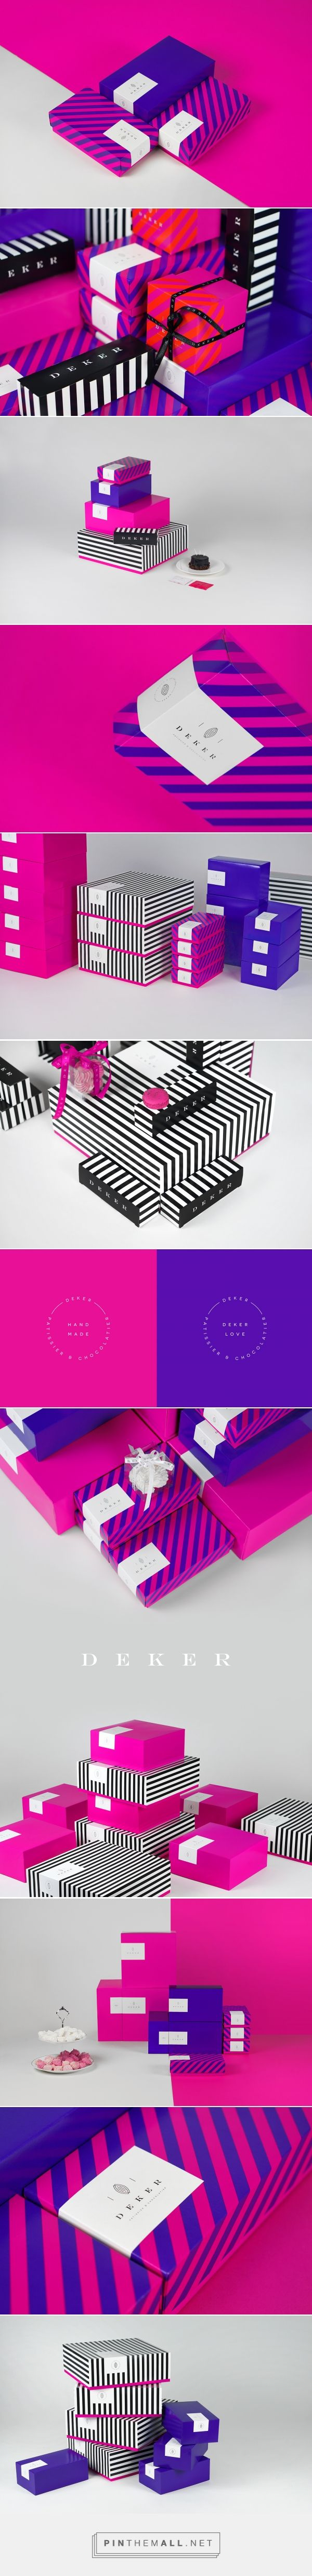 Deker Patissier and Chocolatier Branding and Packaging by Less.   Fivestar Branding Agency – Design and Branding Agency & Curated Inspiration Gallery